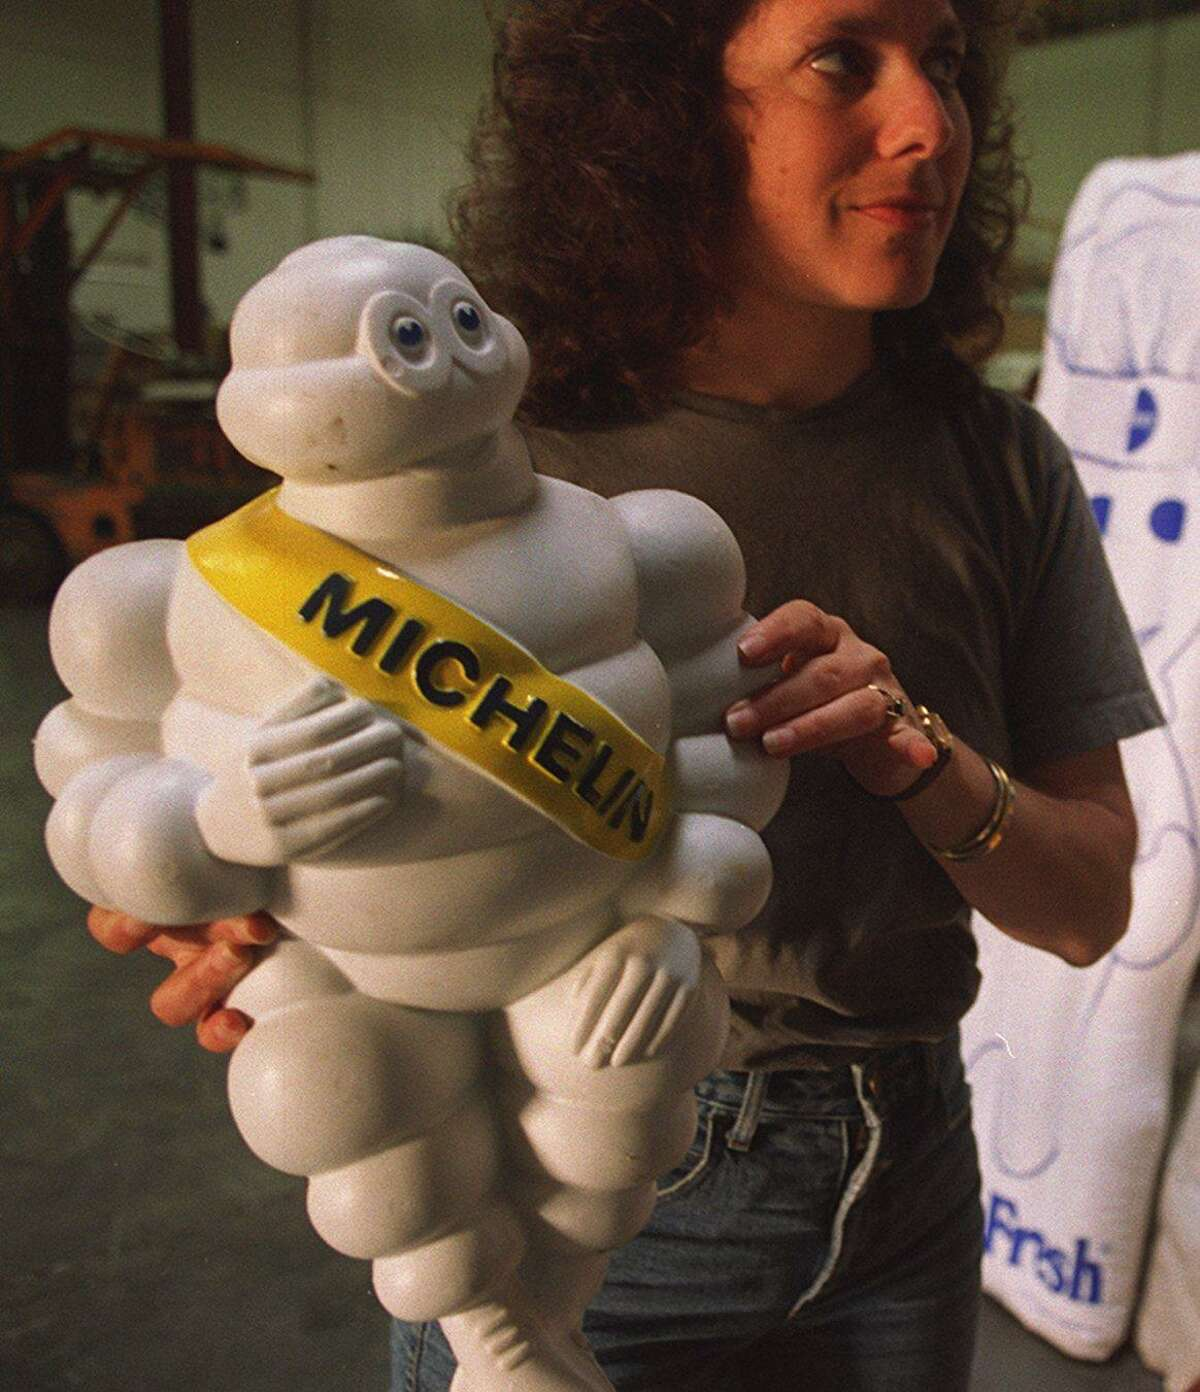 Ellen Weis holds a figurine of the Michelin Man at the Museum of Modern Mythology in San Francisco in 1996.